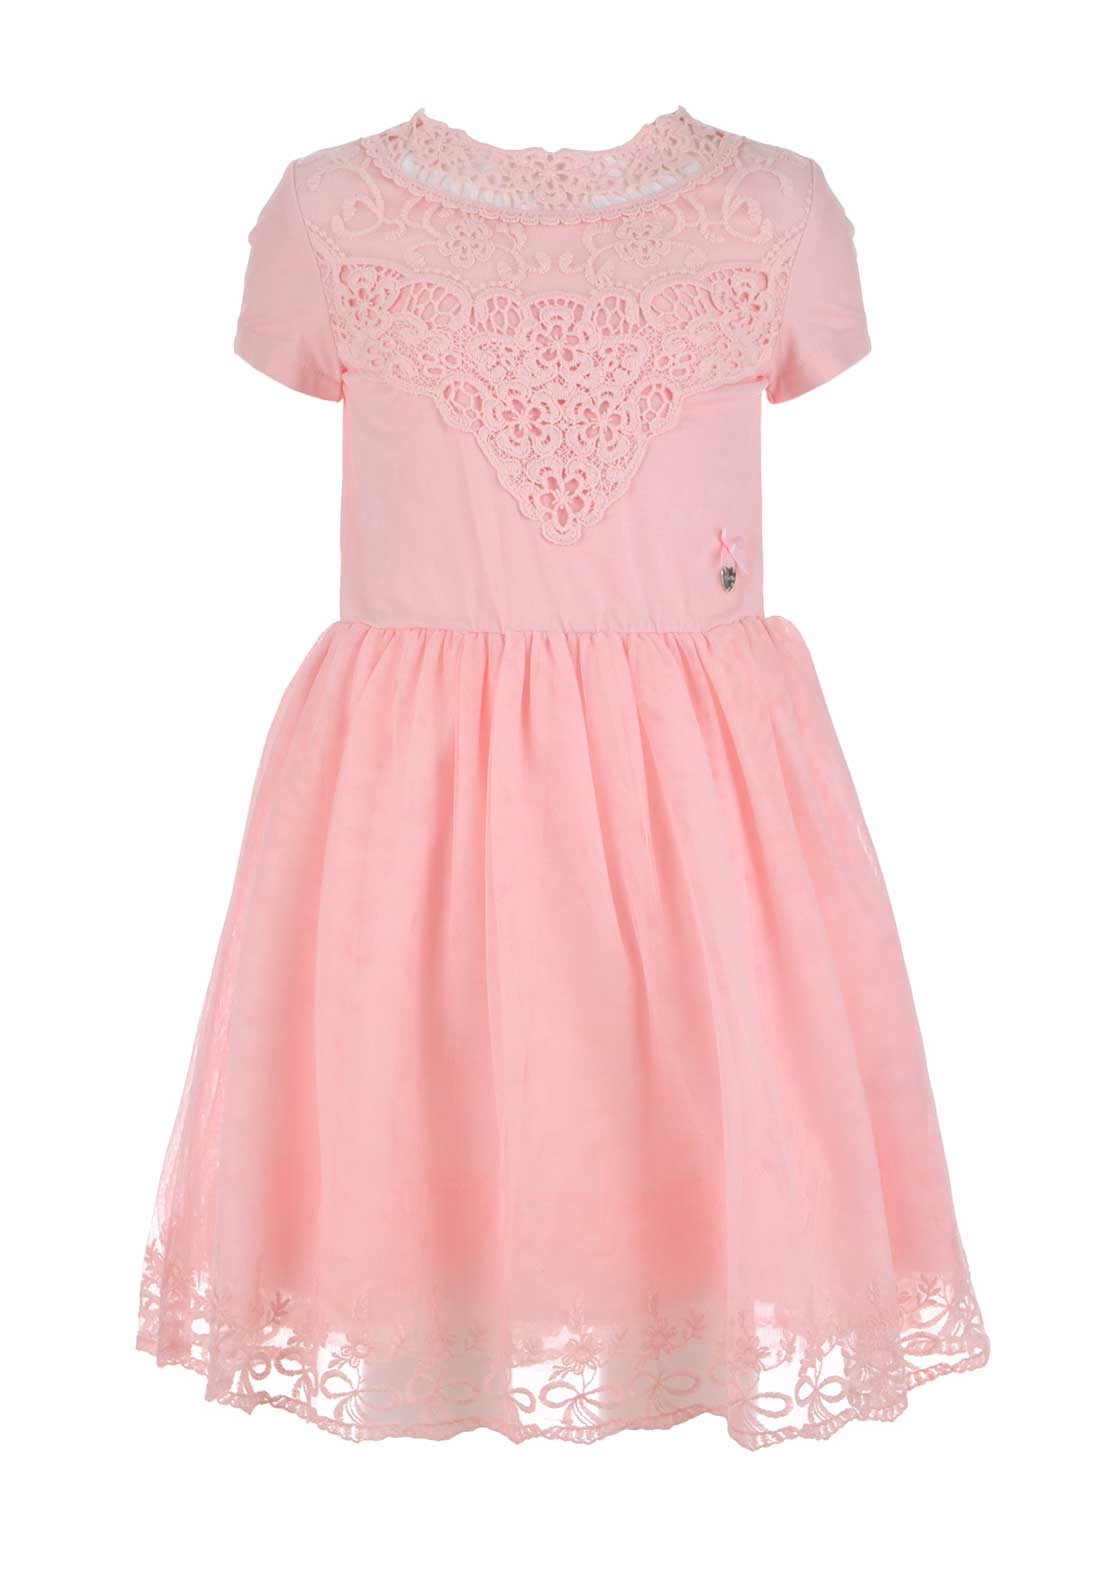 Le Chic Girls Crochet Tulle Dress, Marshmallow Pink